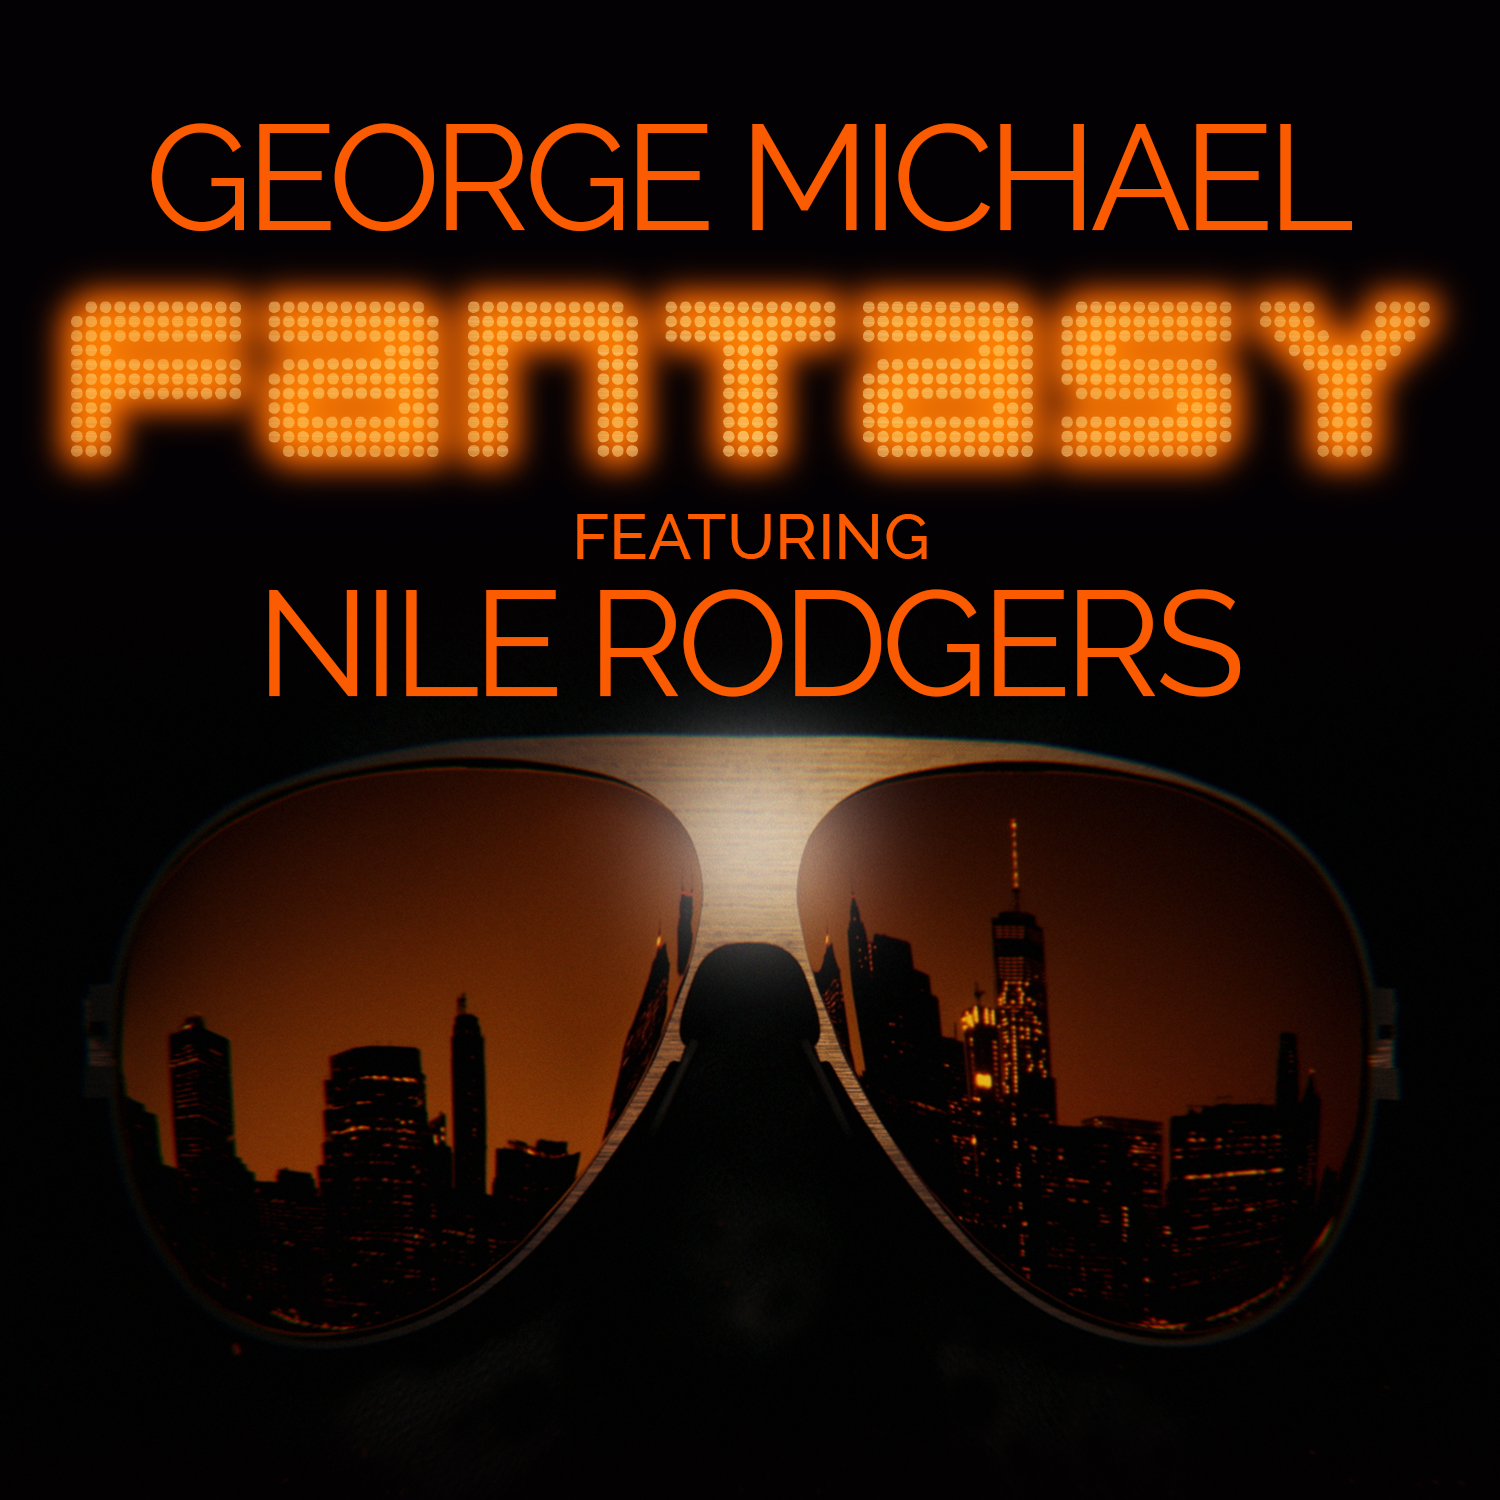 George Michael Single 'Fantasy' Featuring Nile Rodgers Premieres Today